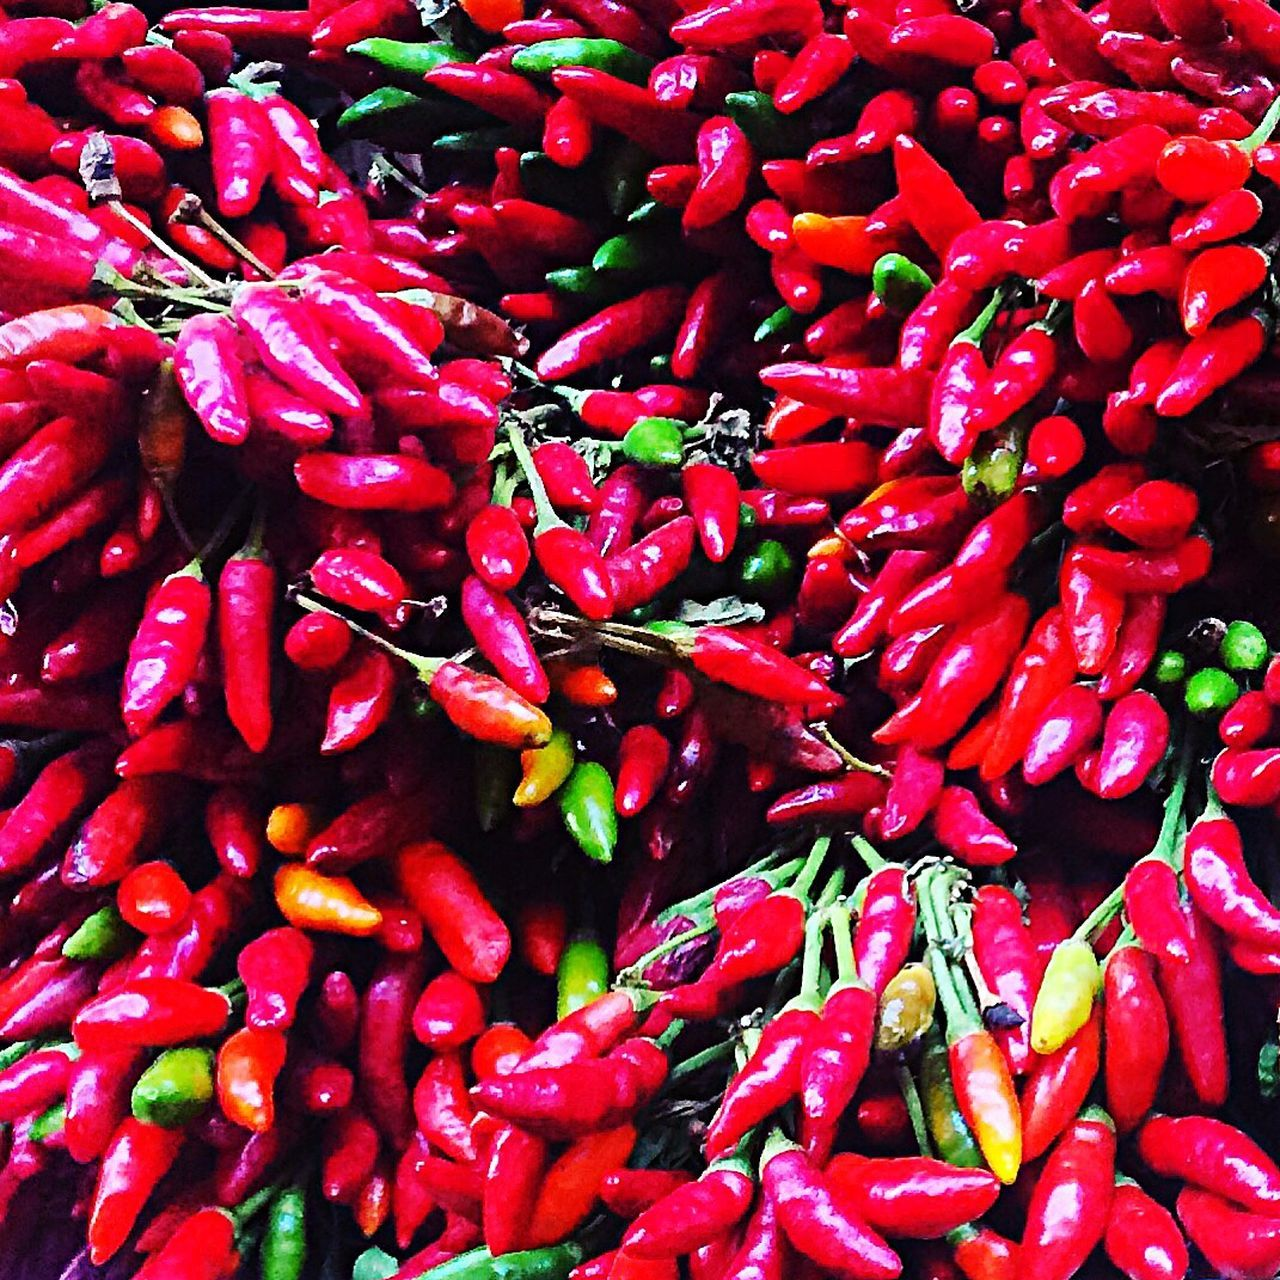 Red Taking Photos Nature Chillipepper Peperoncino Magic Red Red Chili Pepper Freshness Food And Drink Food Full Frame Spice Backgrounds Vegetable Chili Pepper Healthy Eating Large Group Of Objects Abundance For Sale Market Retail  No People Close-up Ingredient Chili  🌶